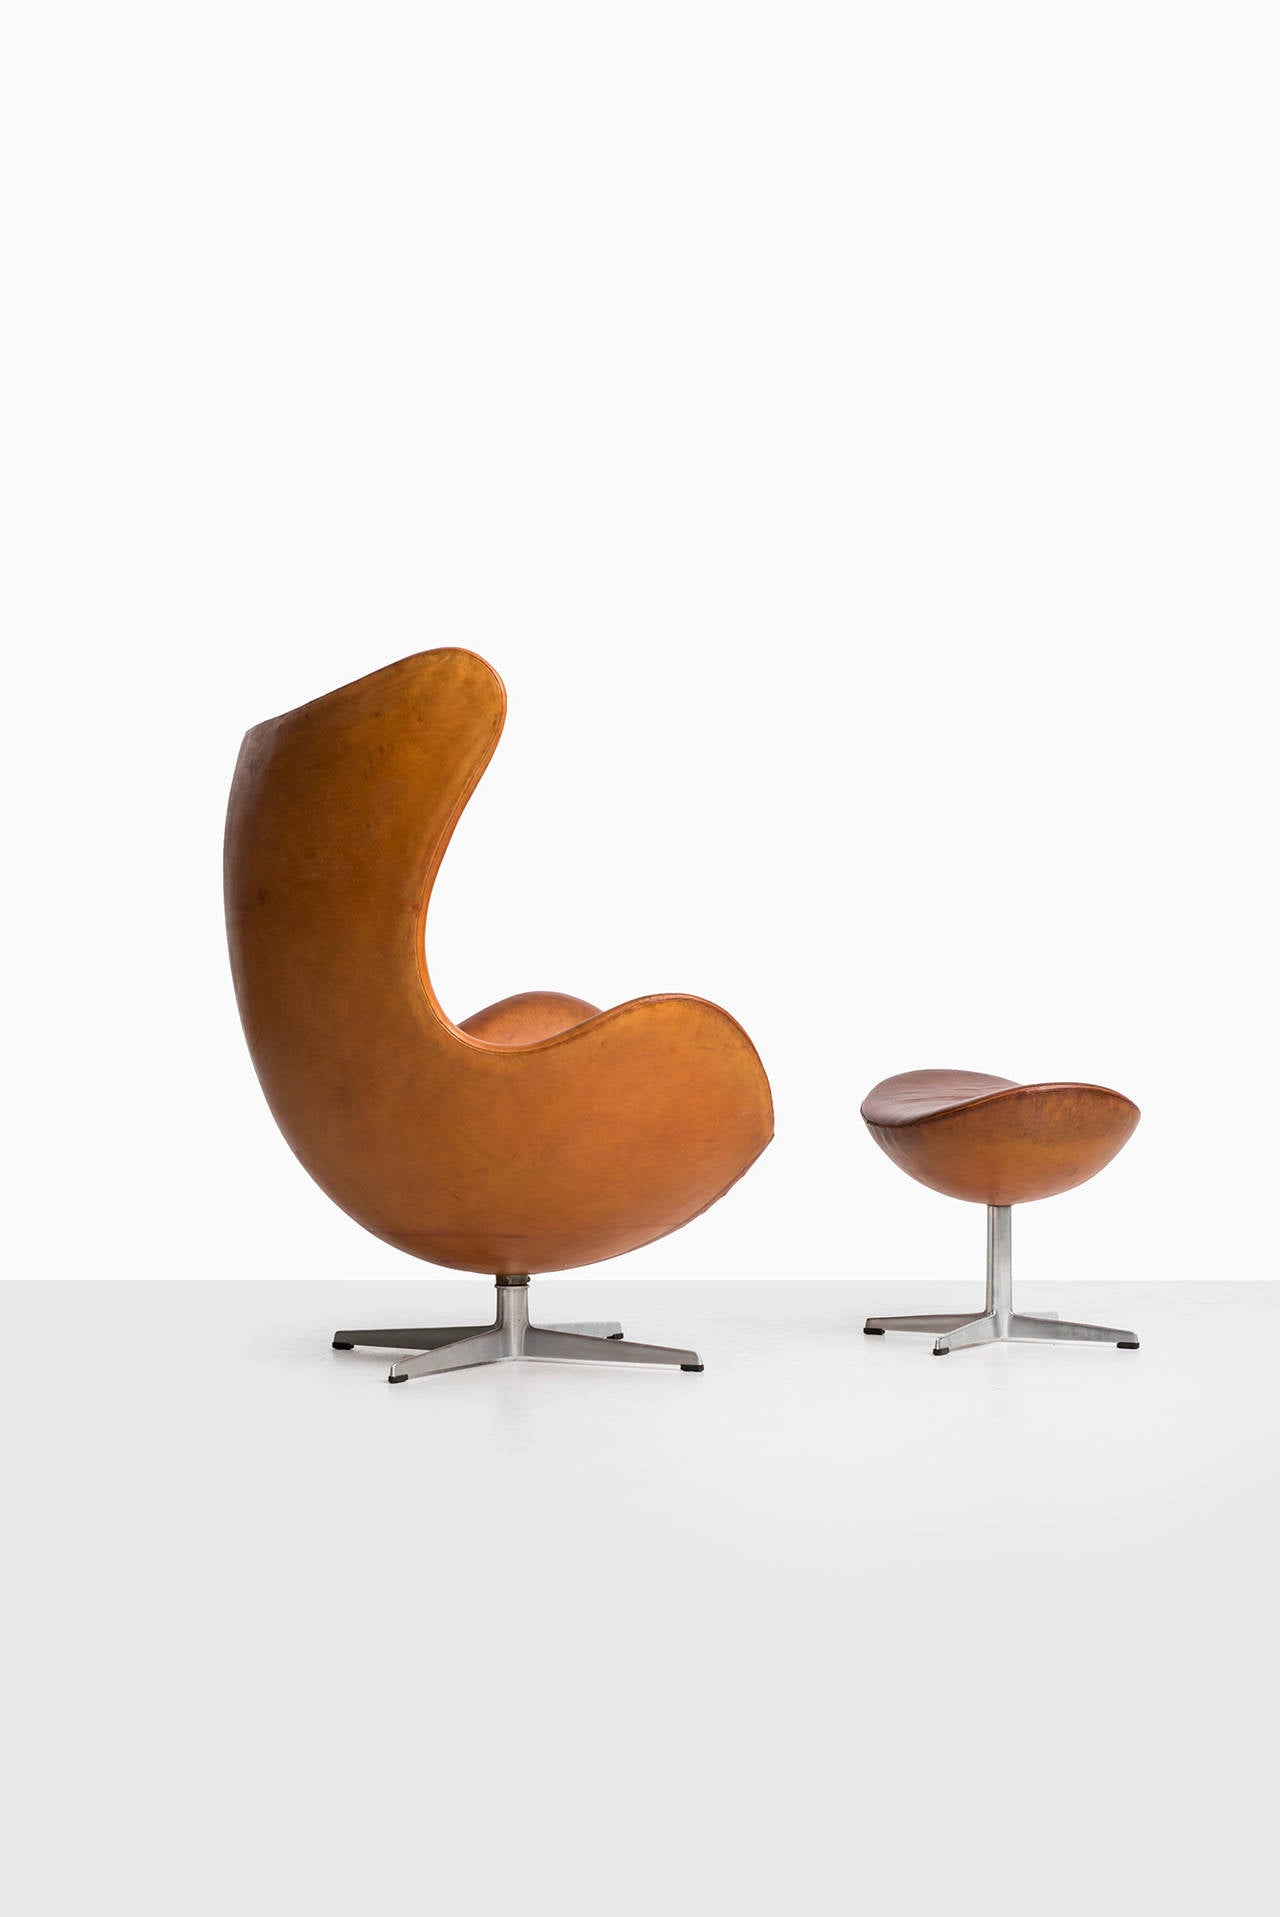 Brown Leather Egg Chair Arne Jacobsen Egg Chair In Original Cognac Brown Leather